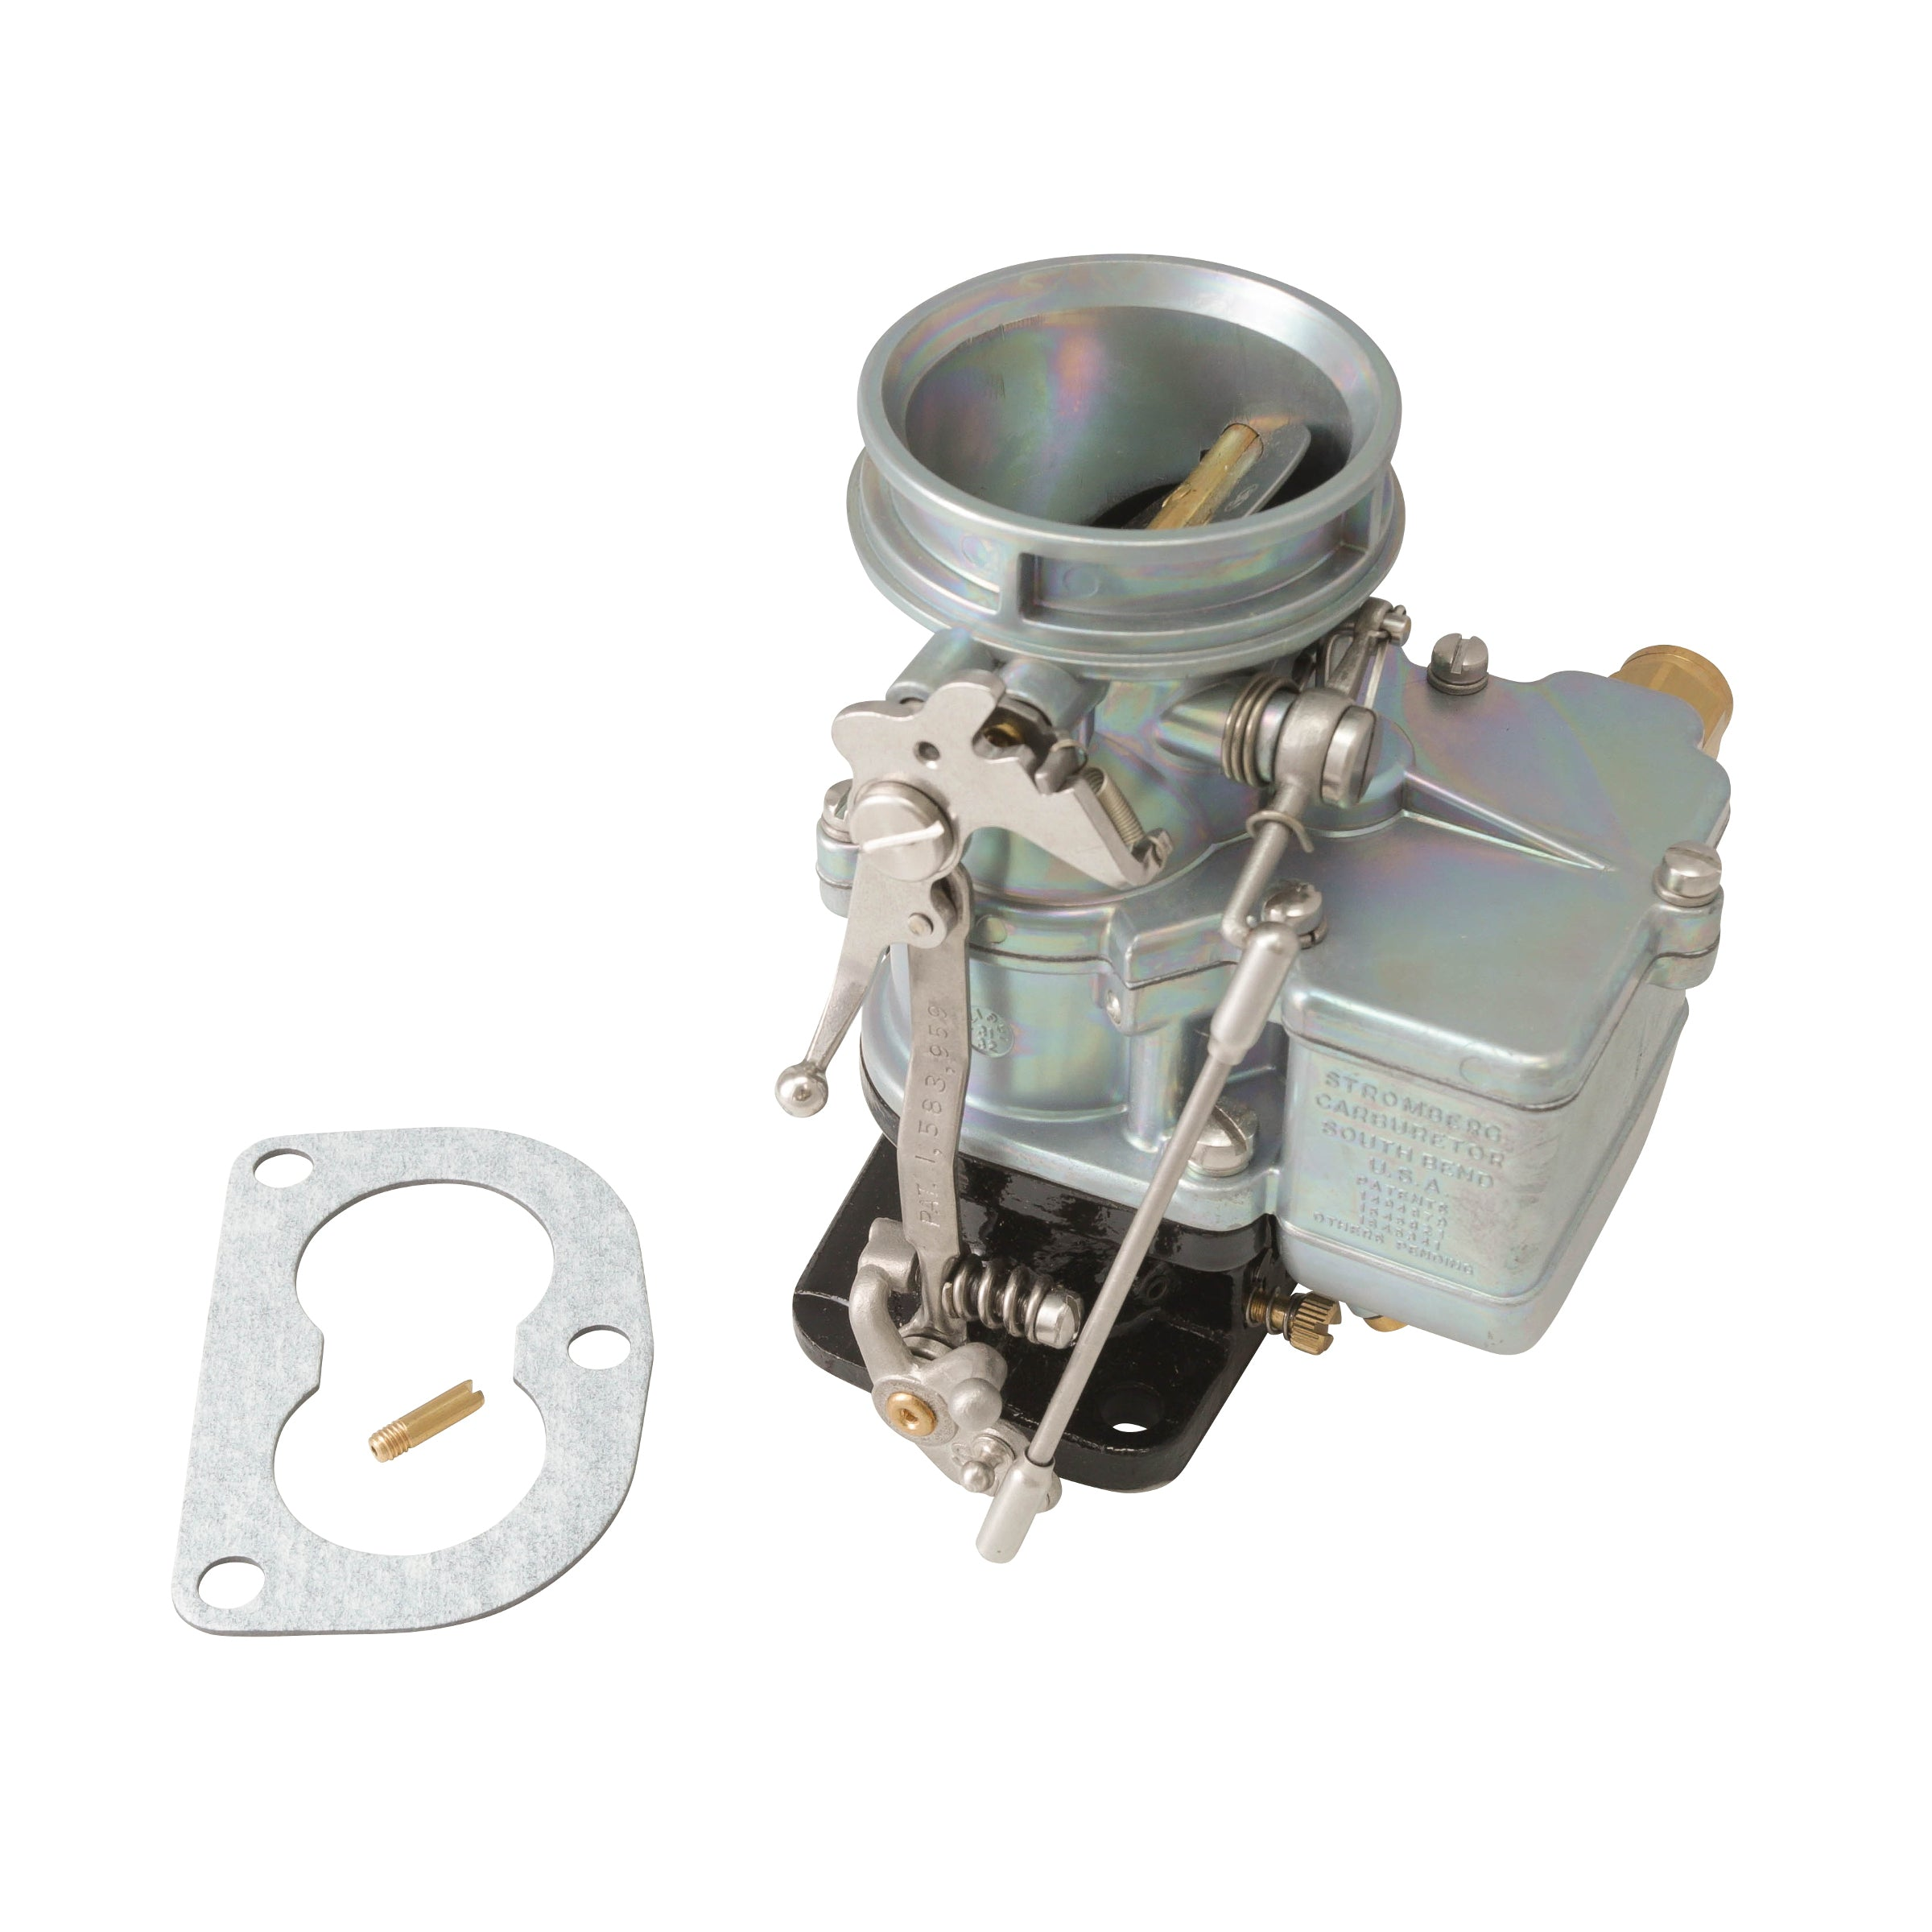 Stromberg 97 Carburetor • Chrome-Plated Body